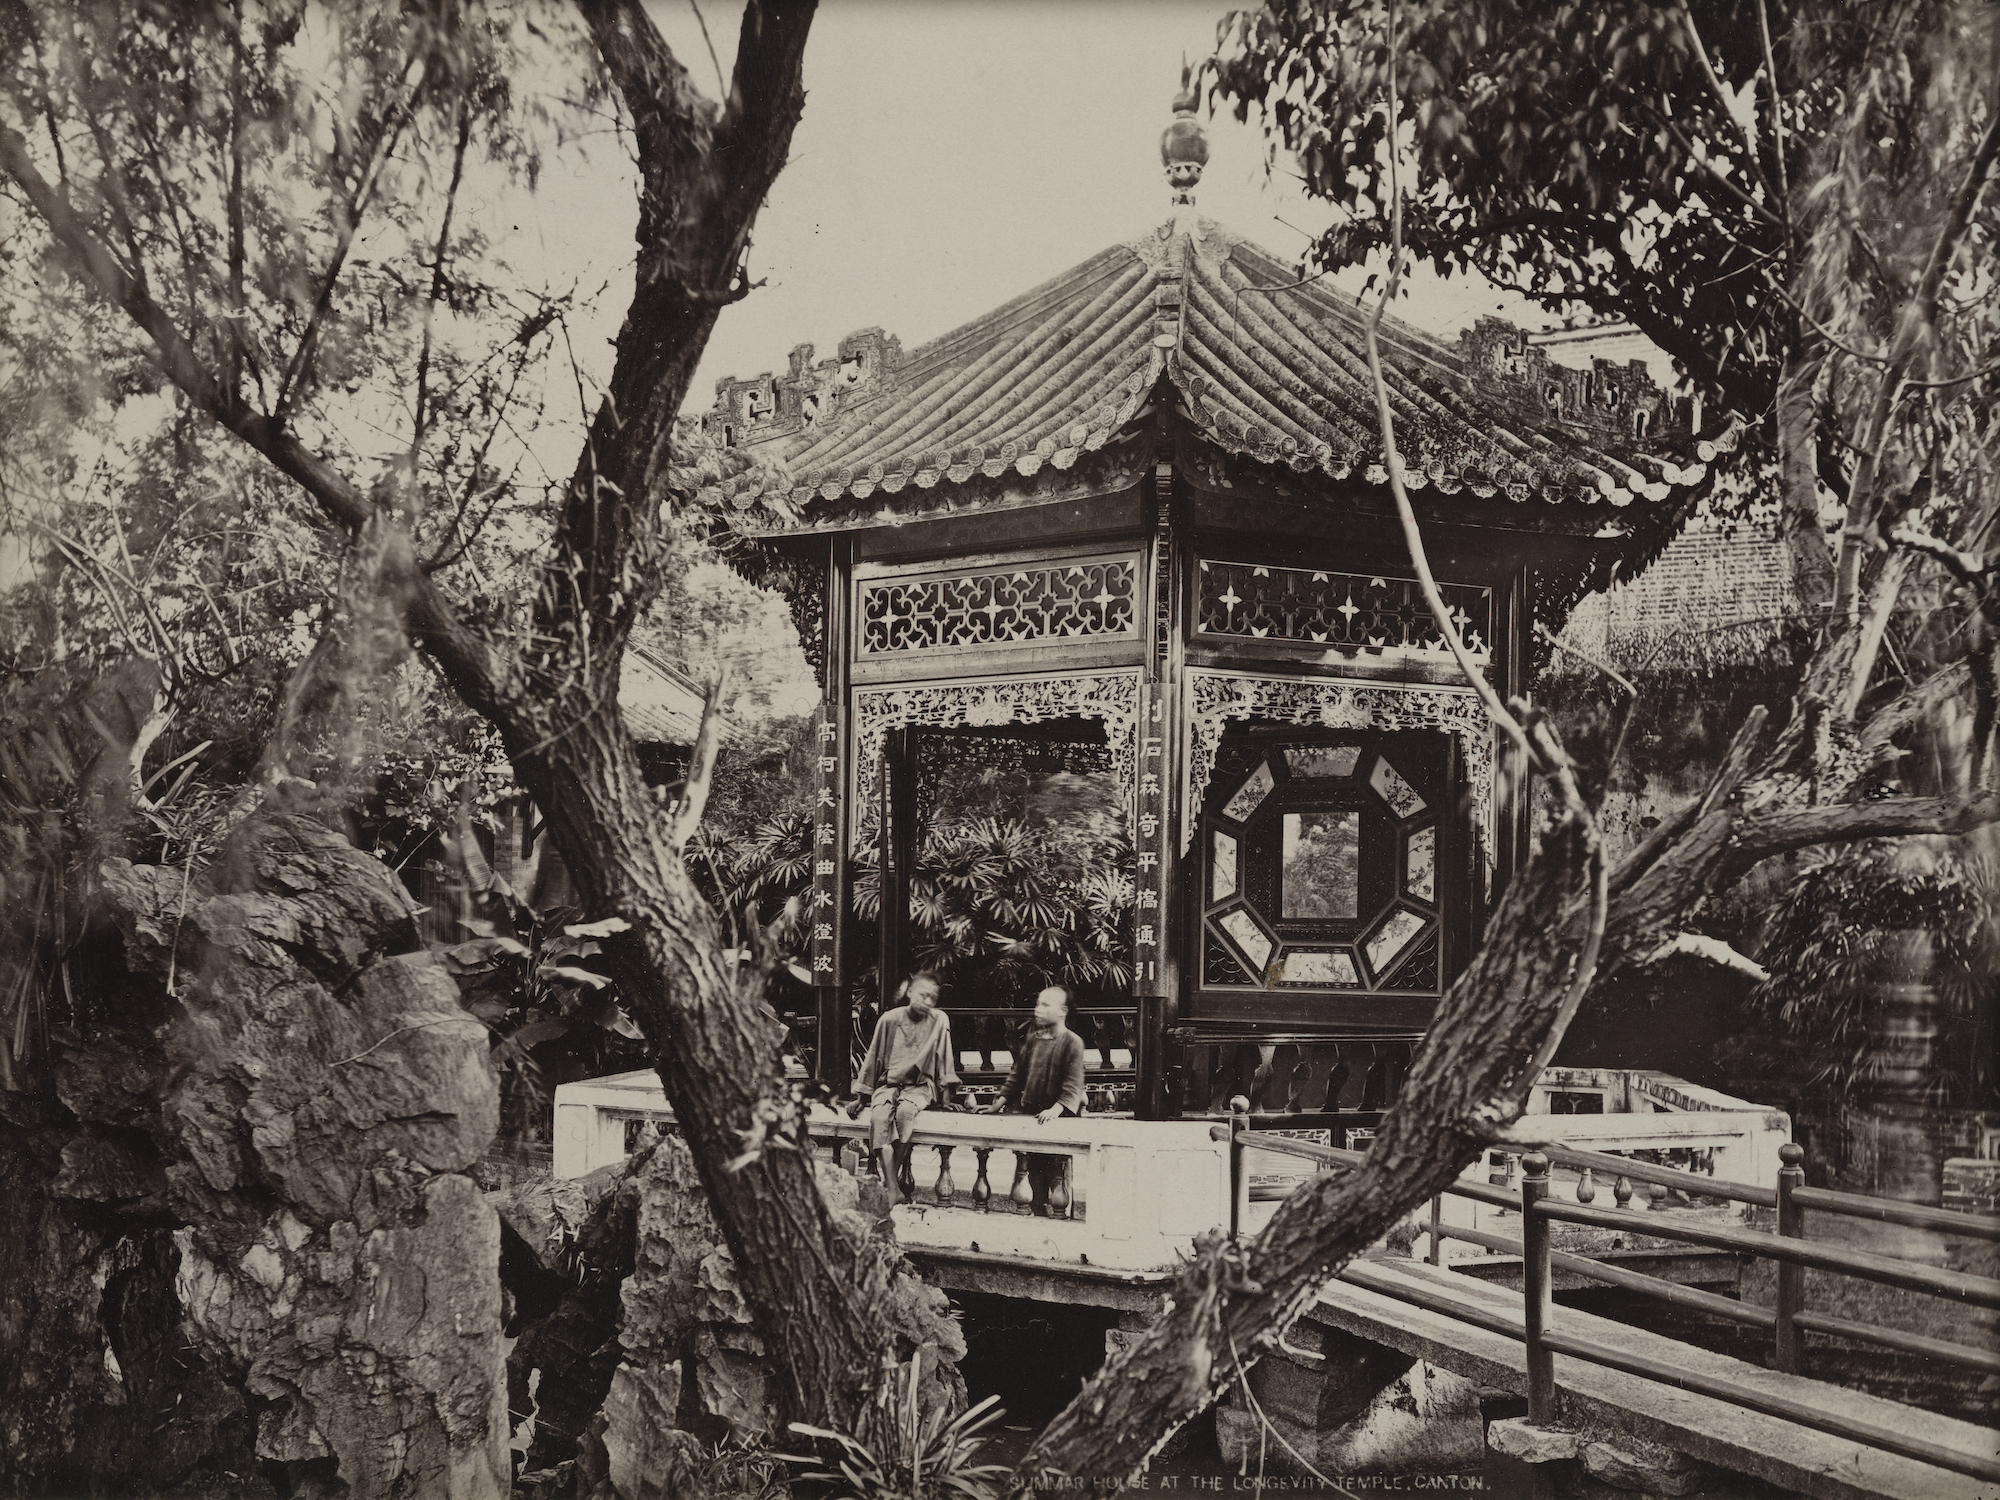 嶺南園林の様子=1870年/The Loewentheil Collection of China Photography